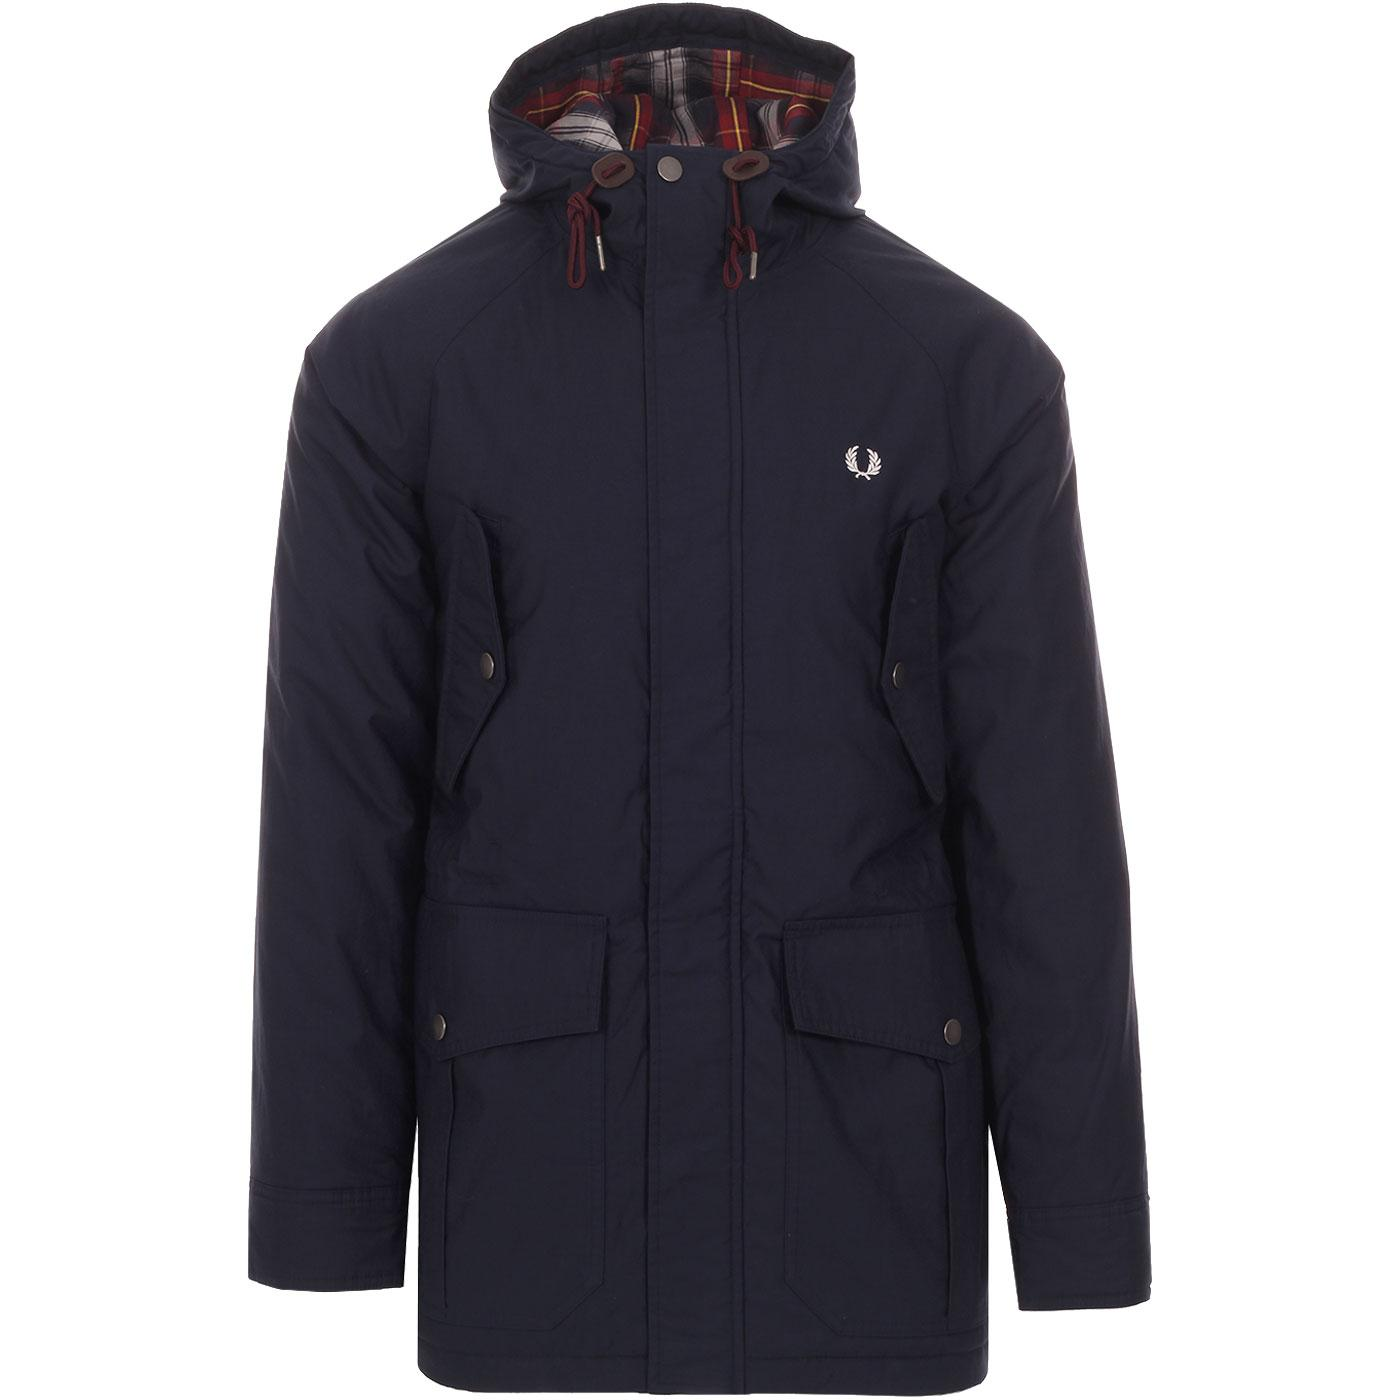 Portwood FRED PERRY Padded Mod Parka Jacket DC